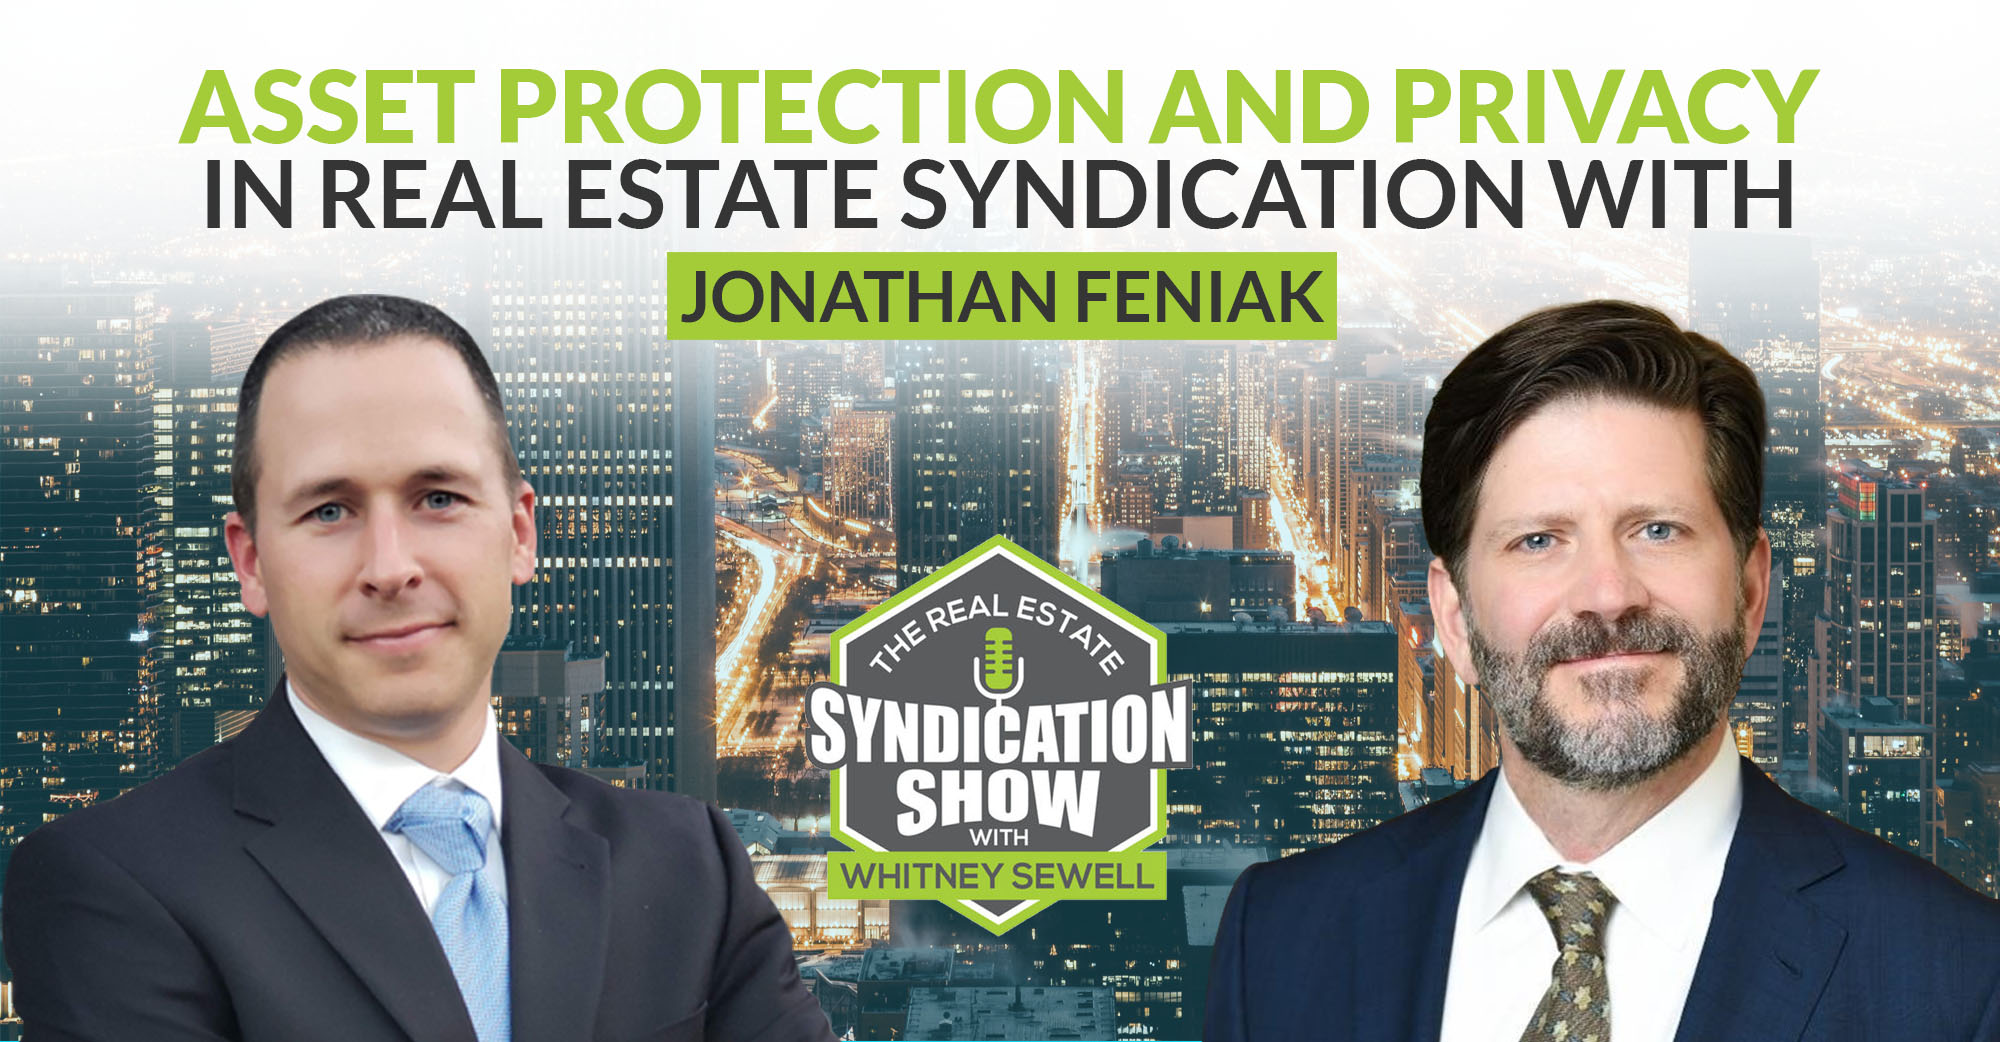 Asset Protection and Privacy in Real Estate Syndication With Jonathan Feniak